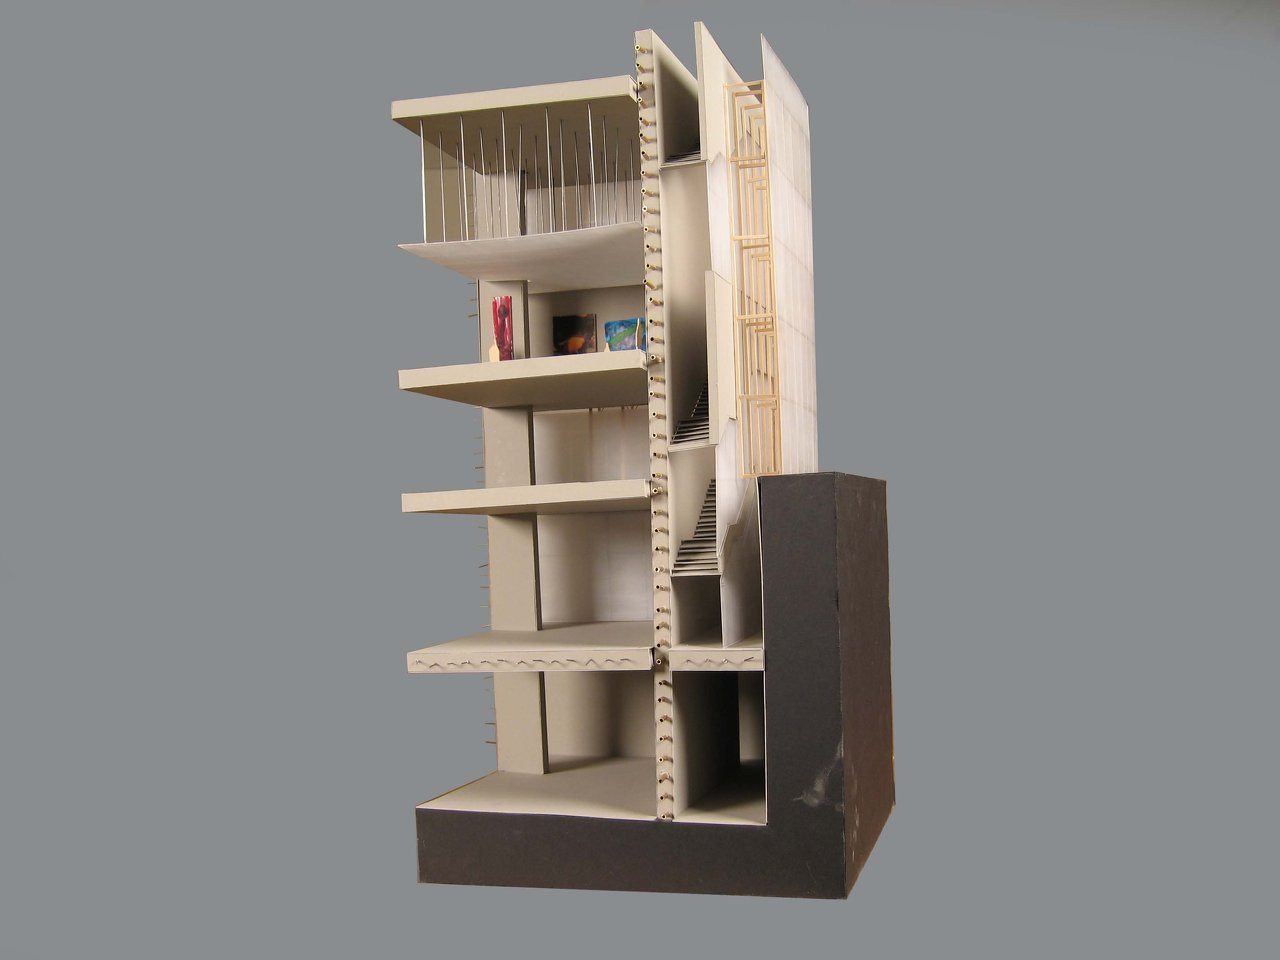 Structures Model Kuntz Haus